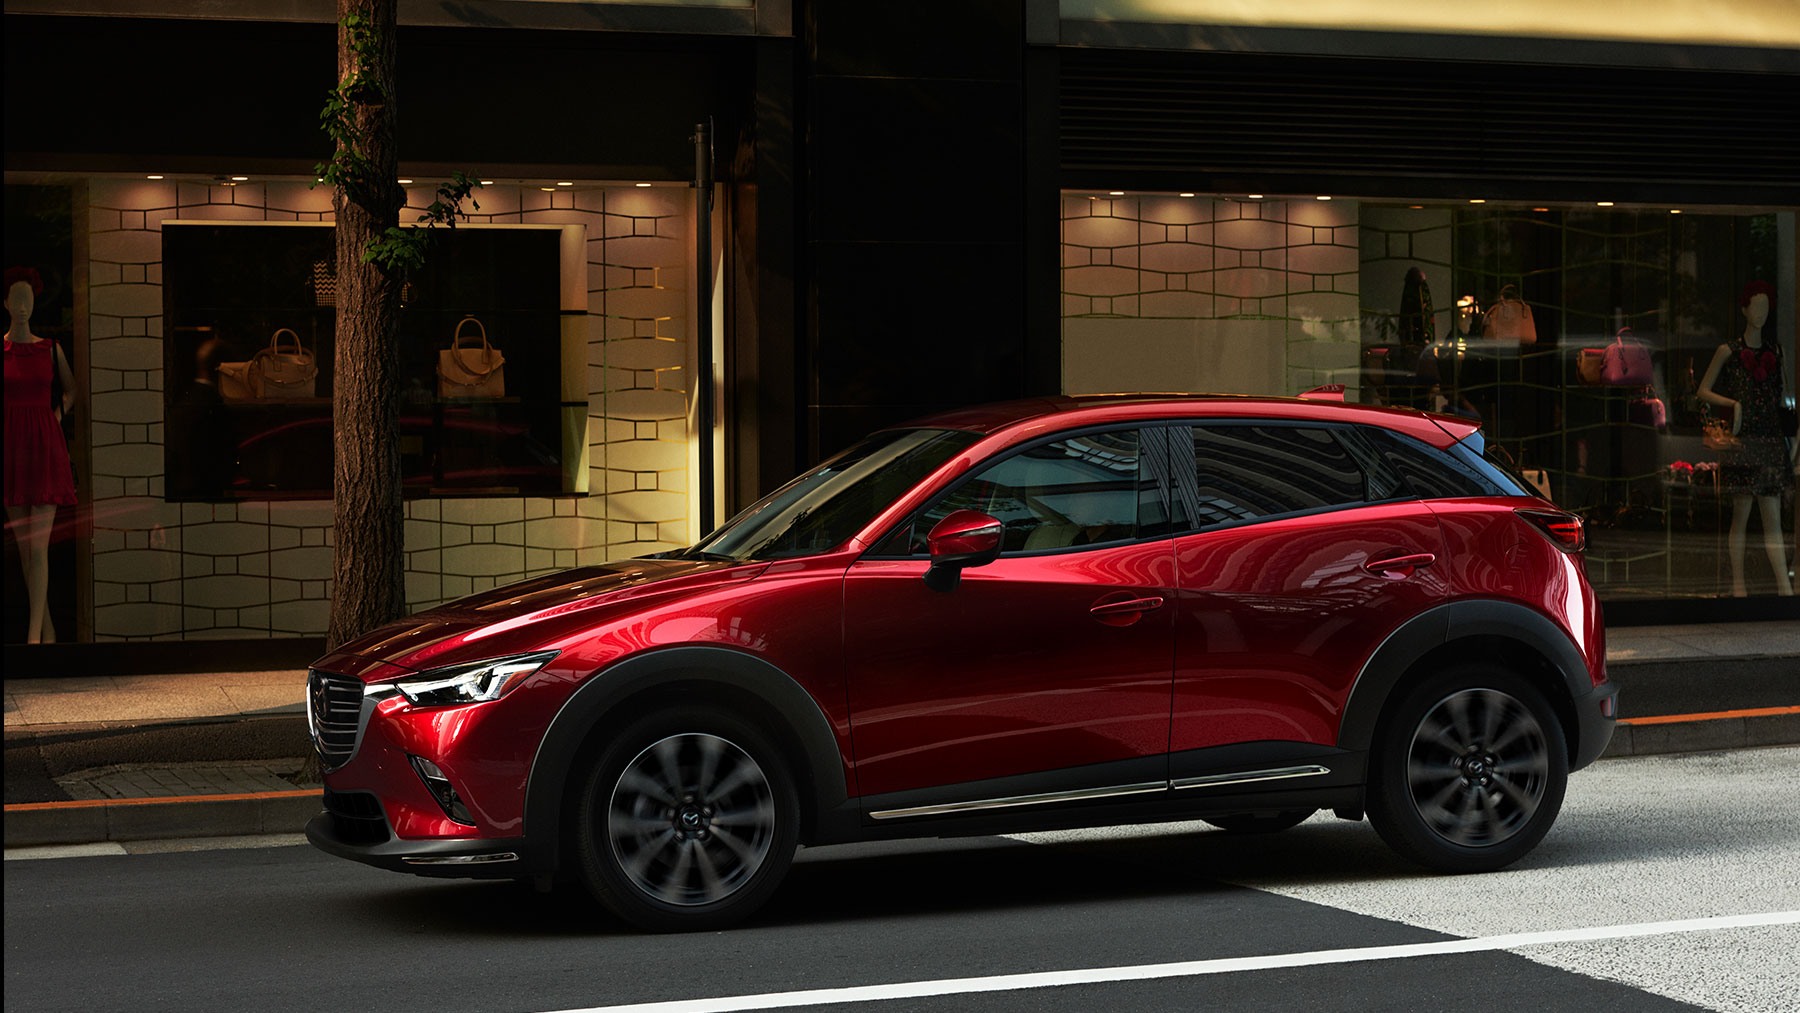 2019 Mazda CX-3 Leasing near Boerne, TX